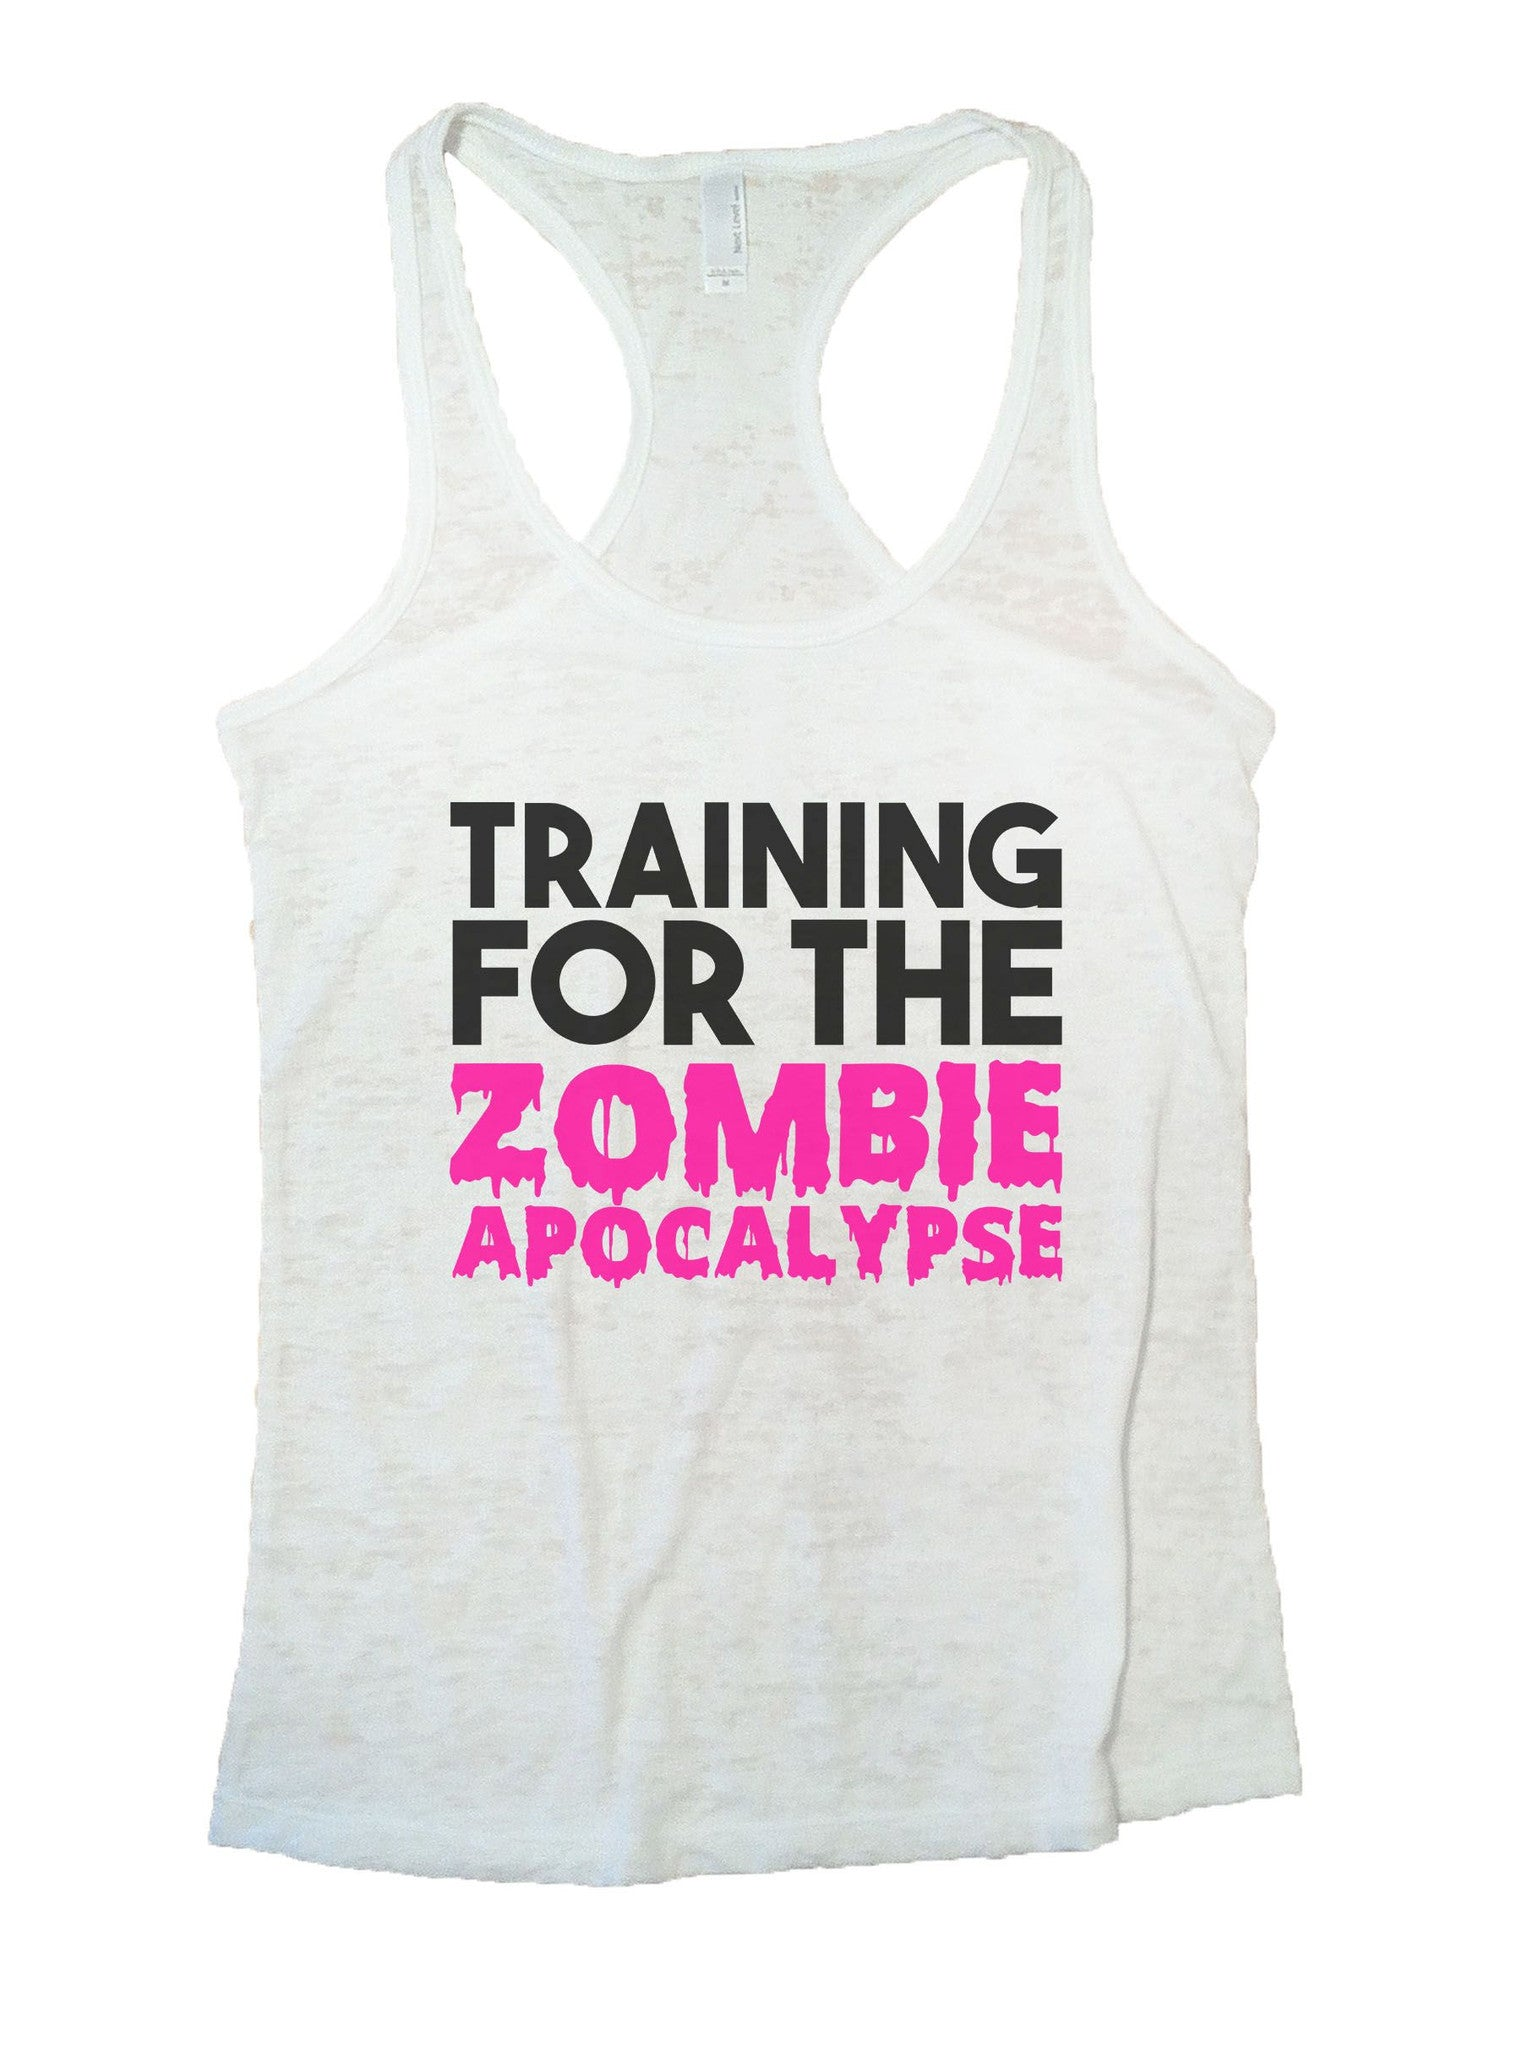 Training For The Zombie Apocalypse Burnout Tank Top By BurnoutTankTops.com - 873 - Funny Shirts Tank Tops Burnouts and Triblends  - 5